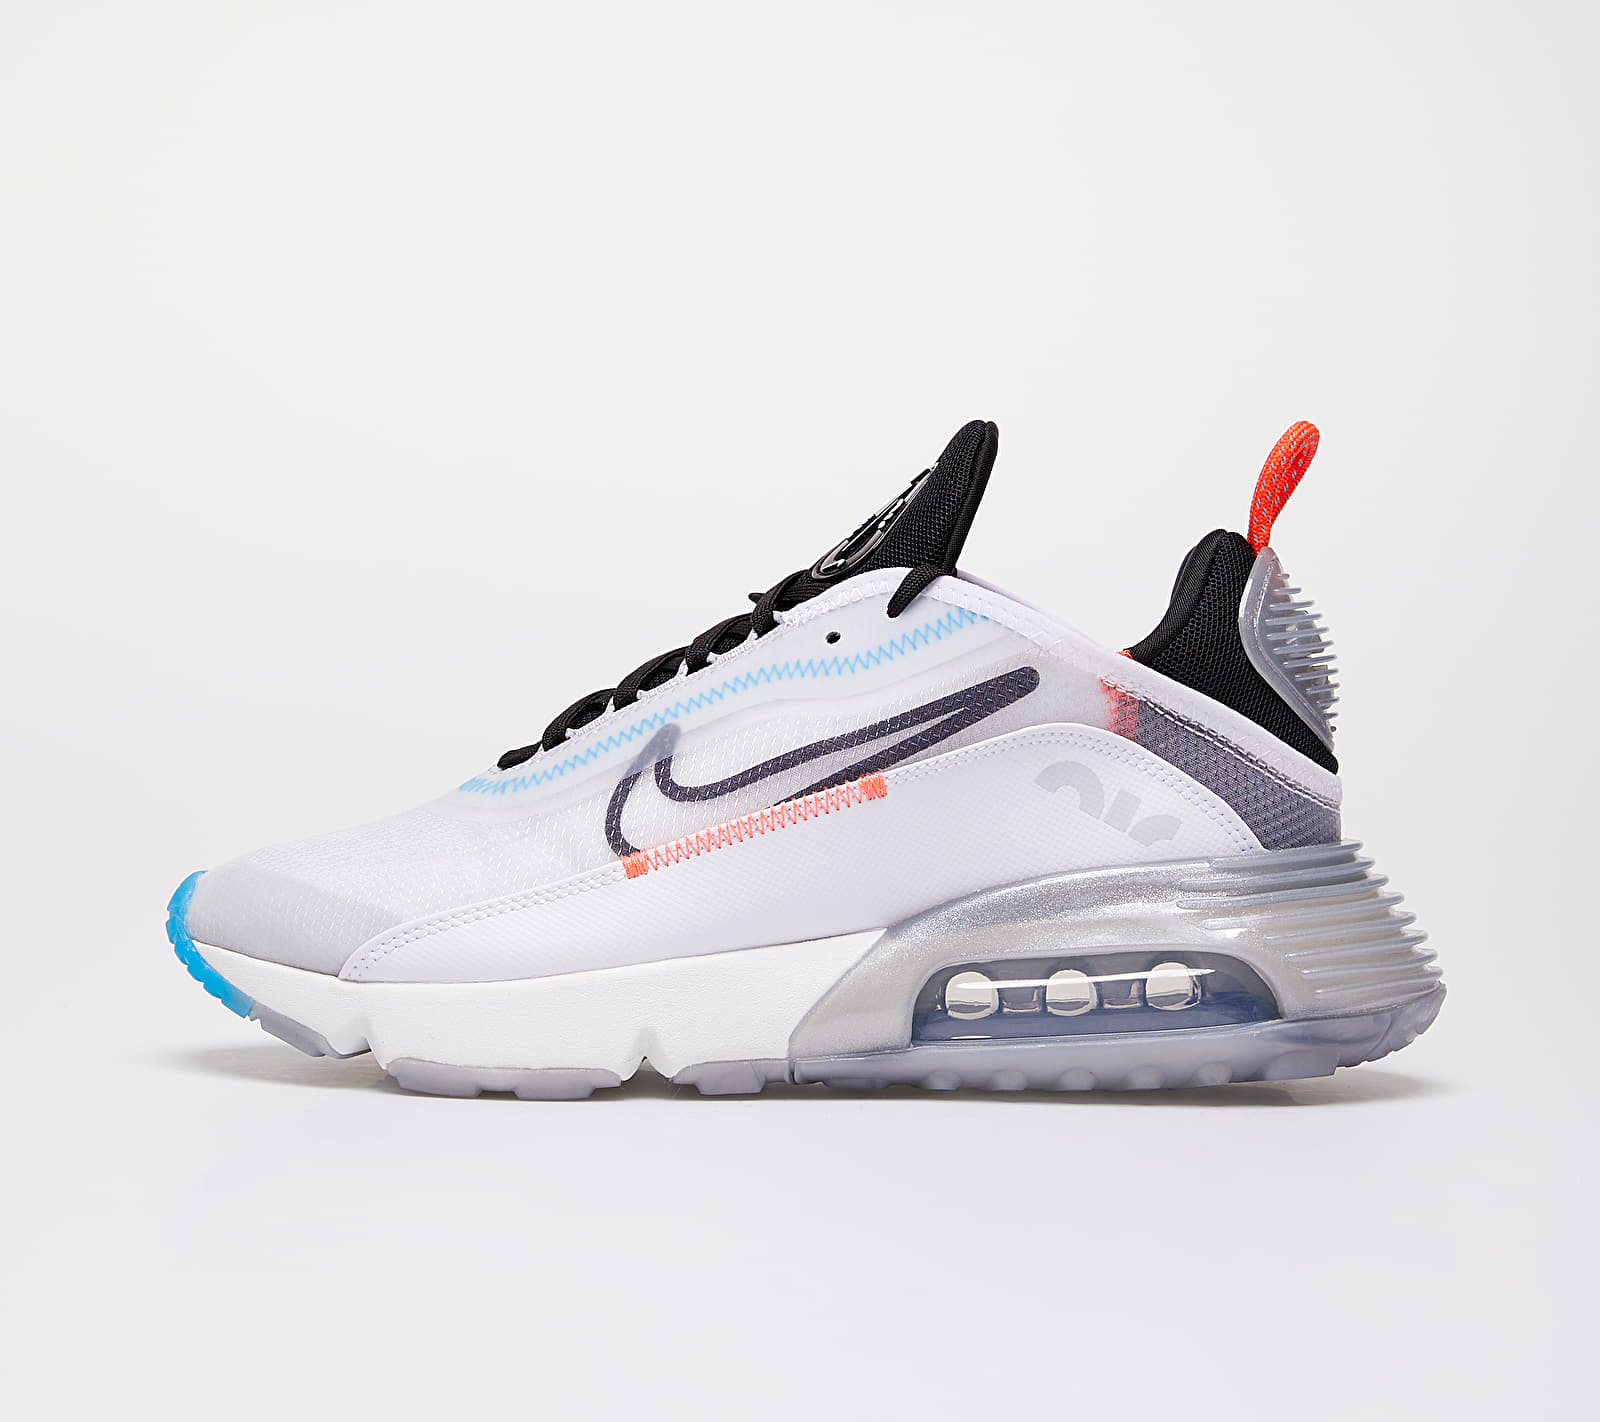 Nike W Air Max 2090 White/ Black-Pure Platinum-Bright Crimson EUR 38.5